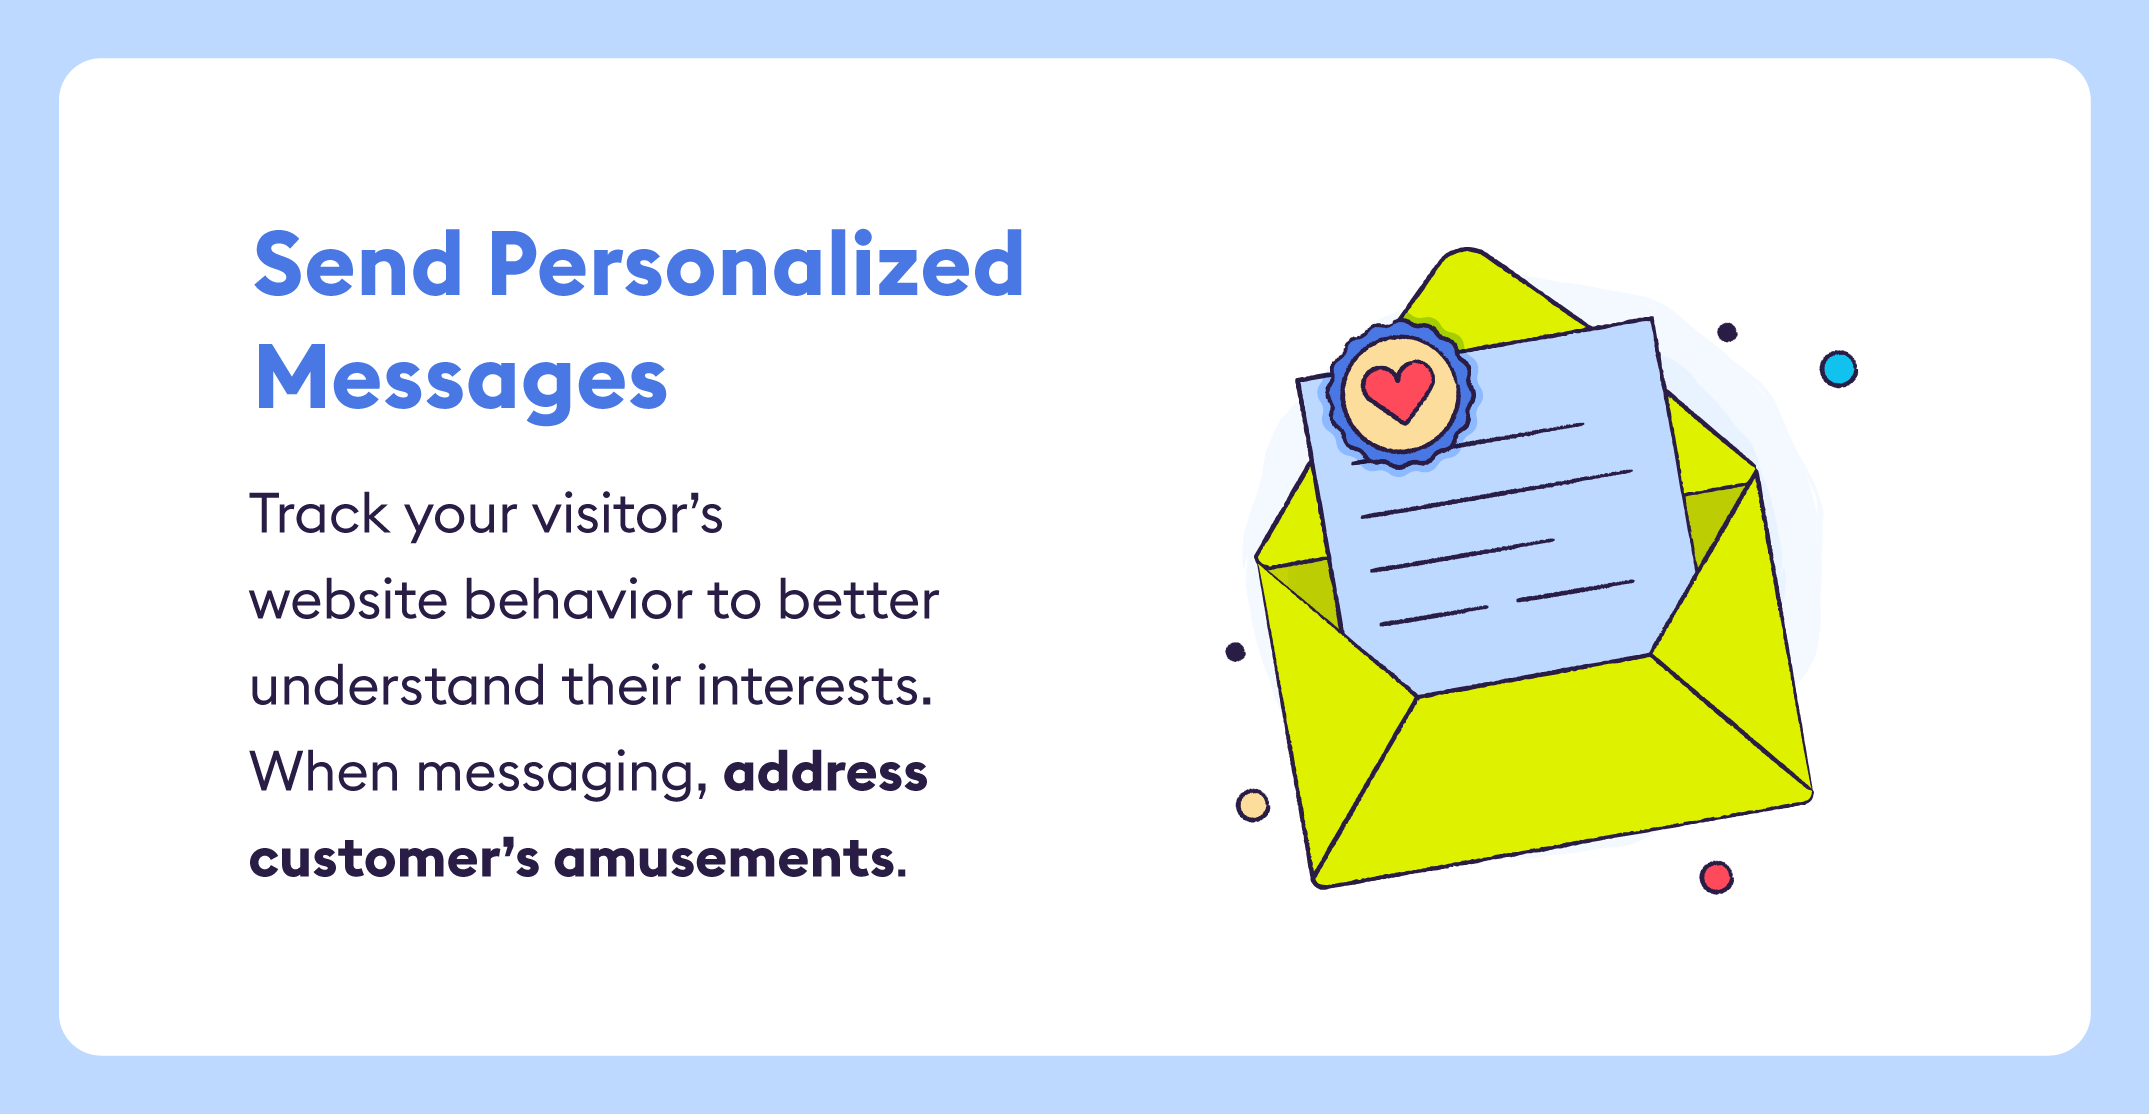 send-personalized-messages